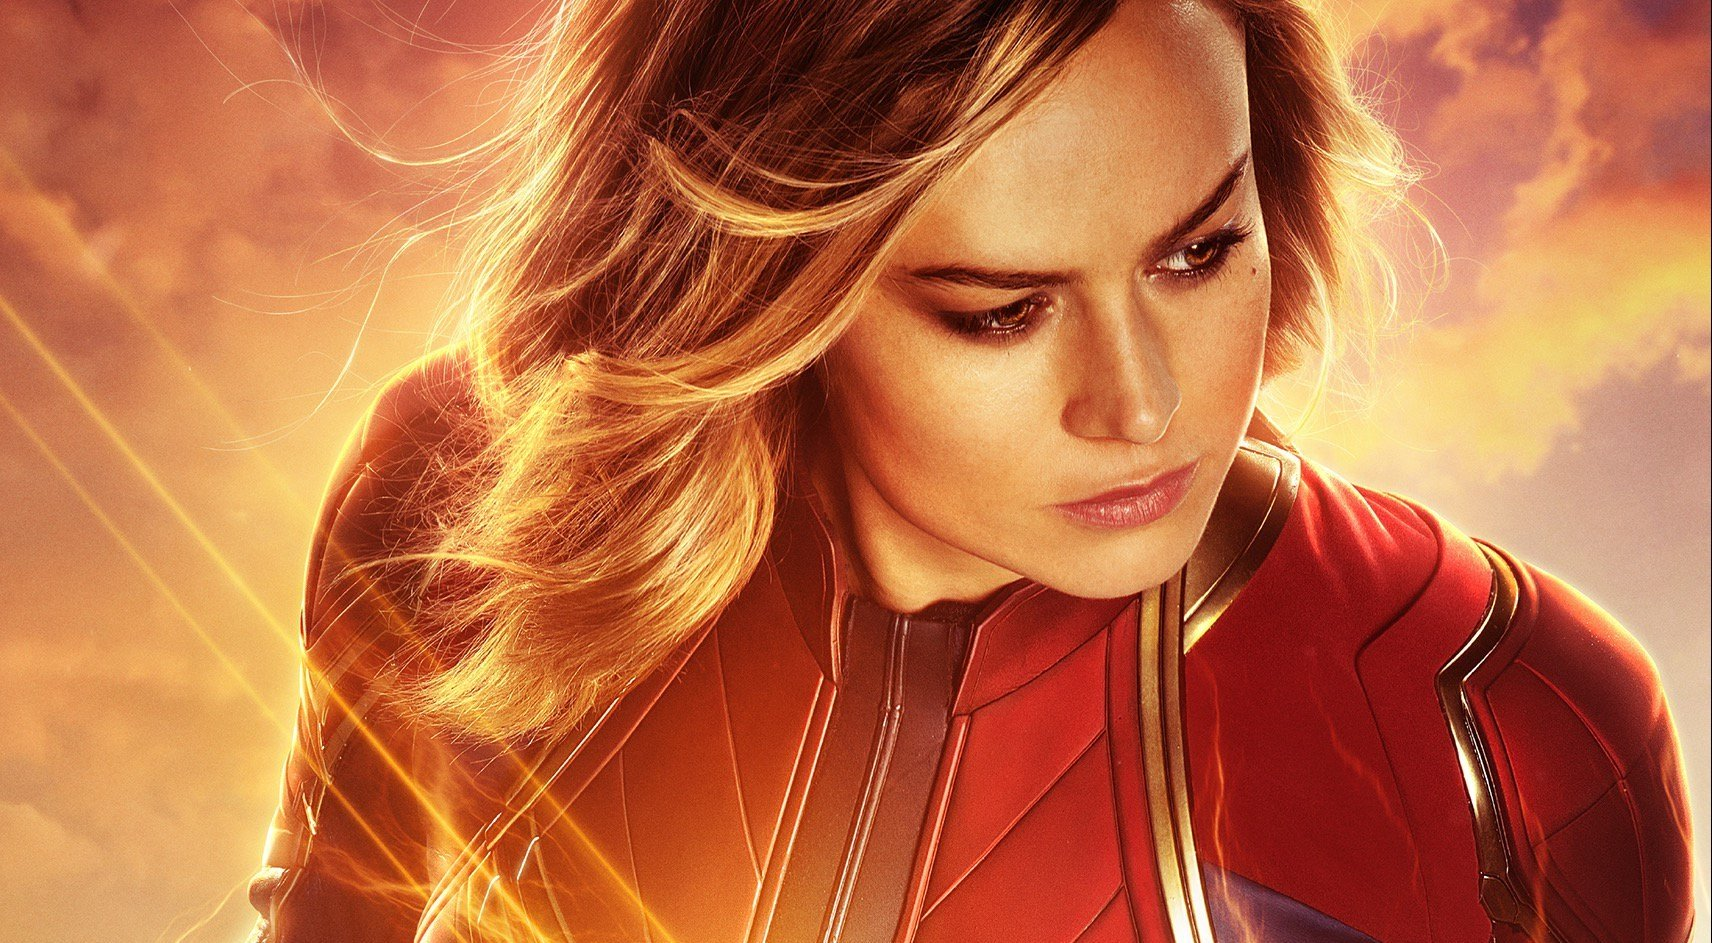 captain marvel star brie larson reportedly signs huge 7-movie deal